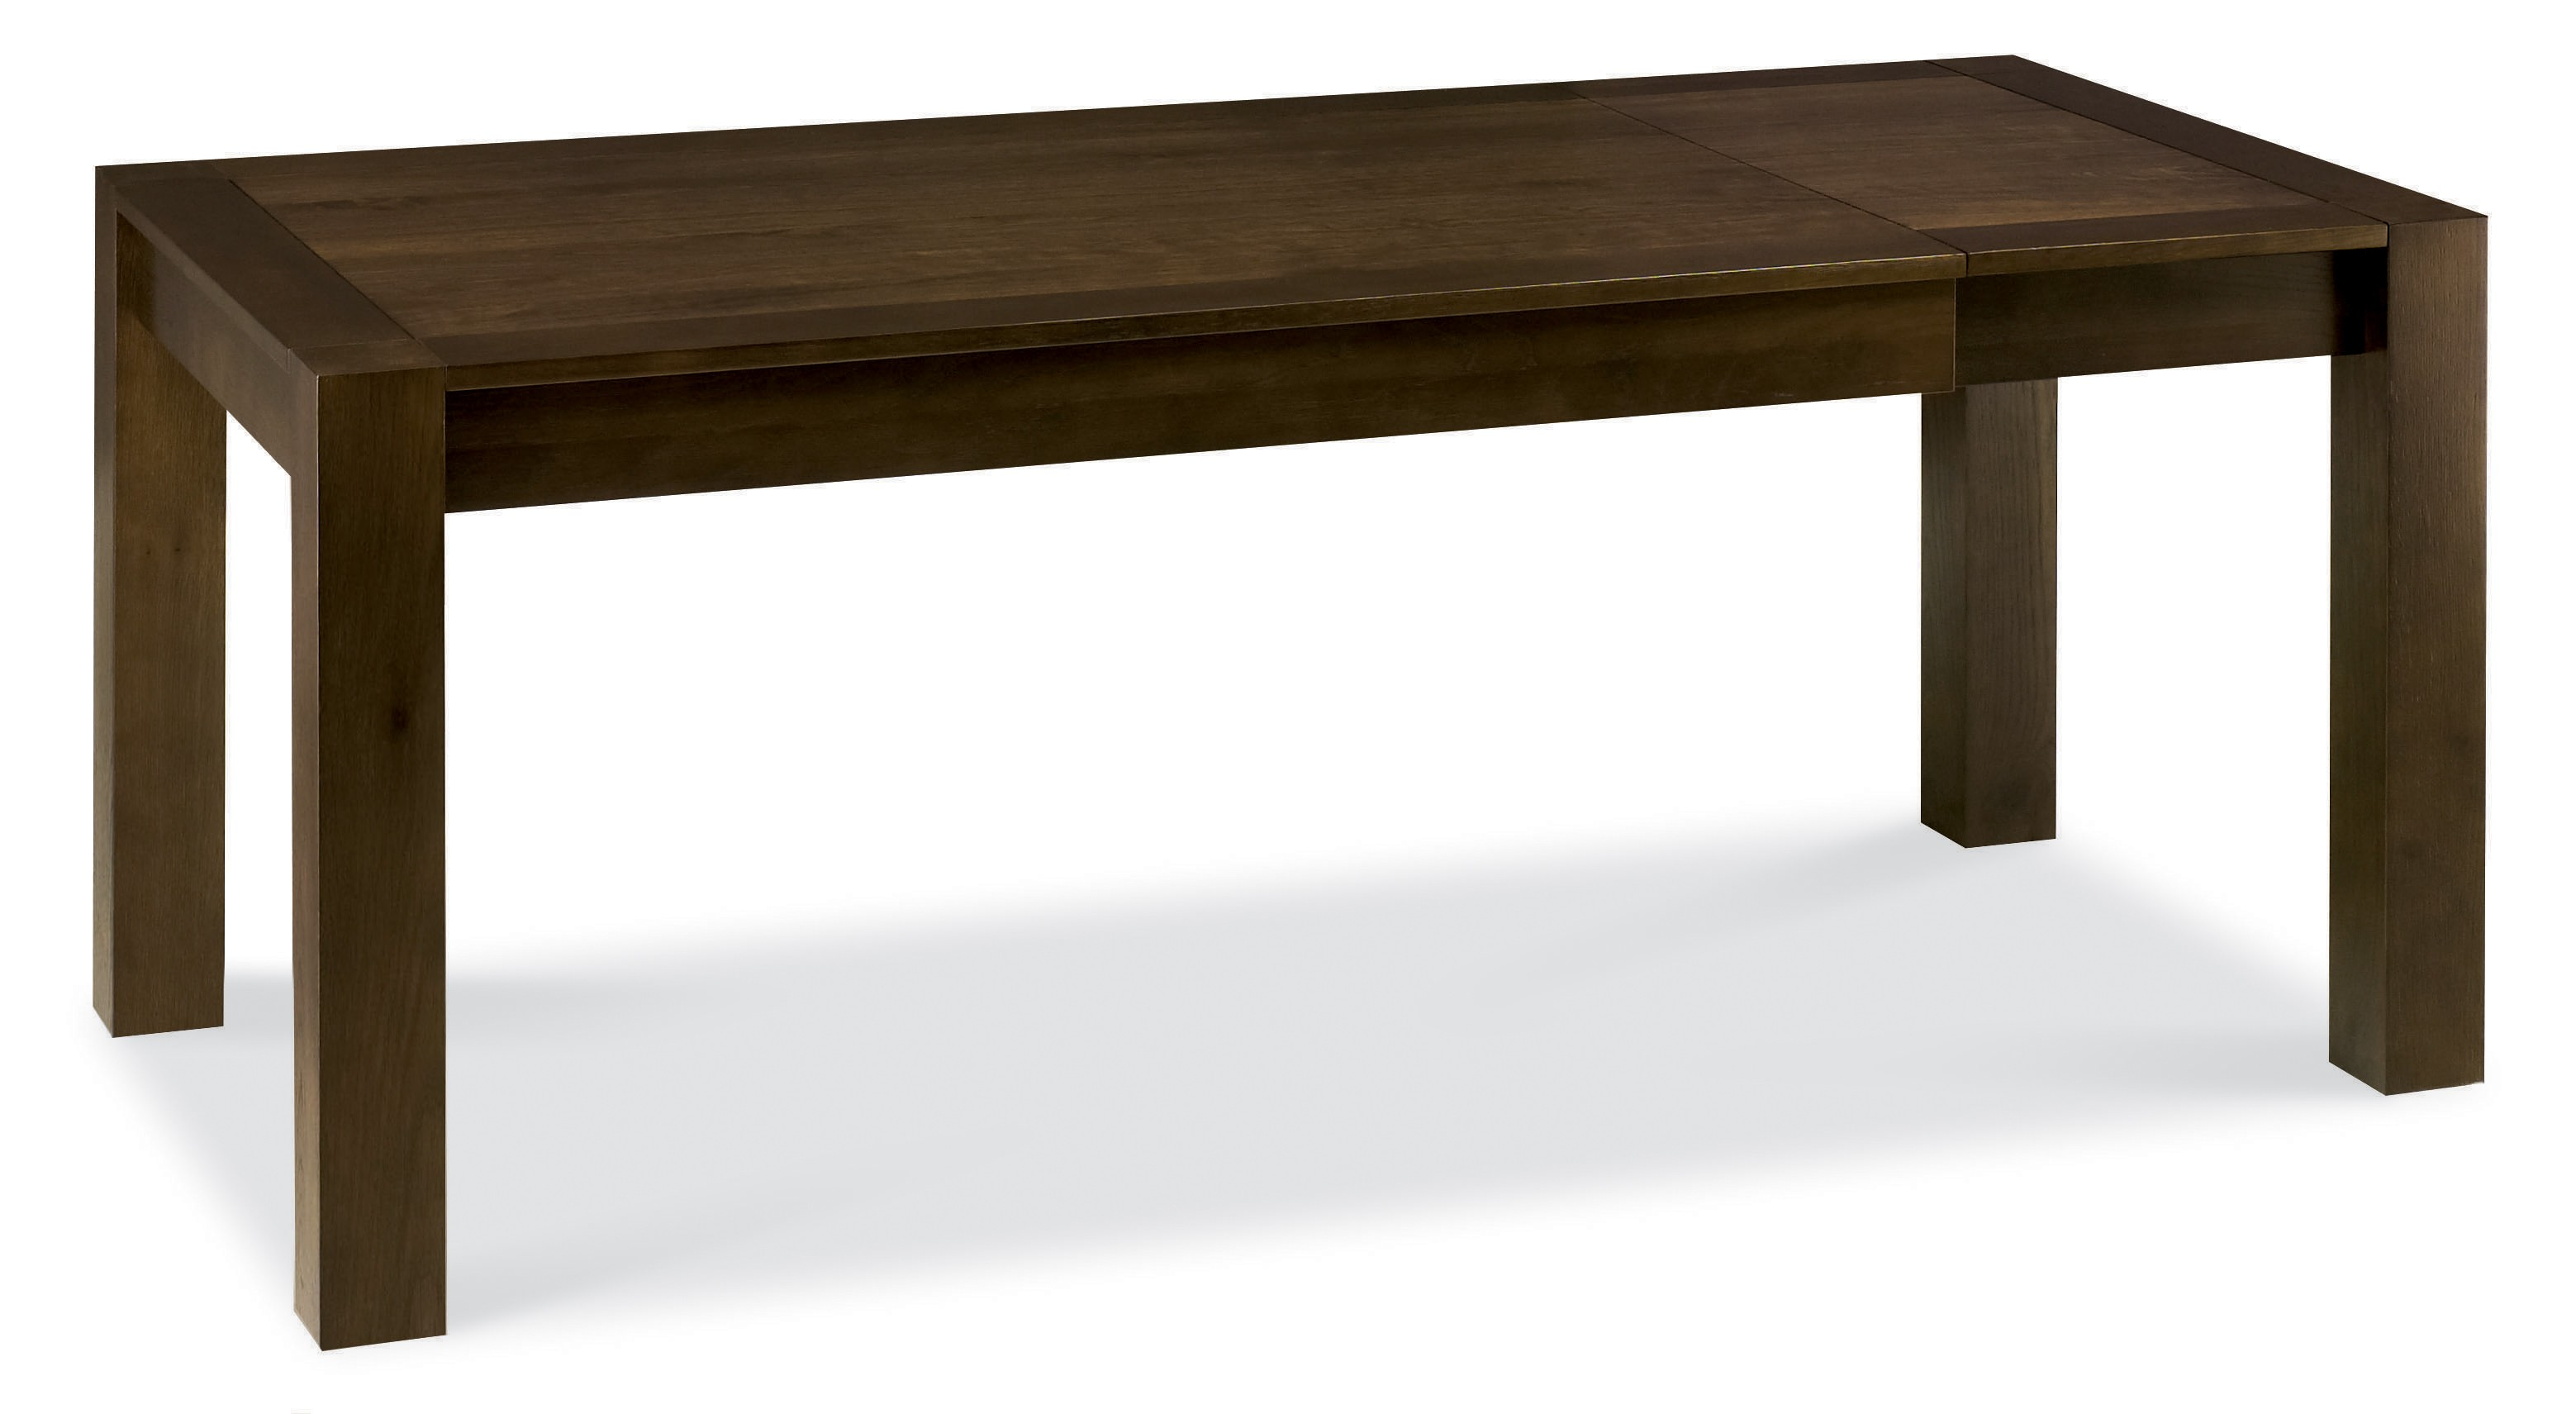 albany walnut 180cm extending dining table frank mc gowan. Black Bedroom Furniture Sets. Home Design Ideas